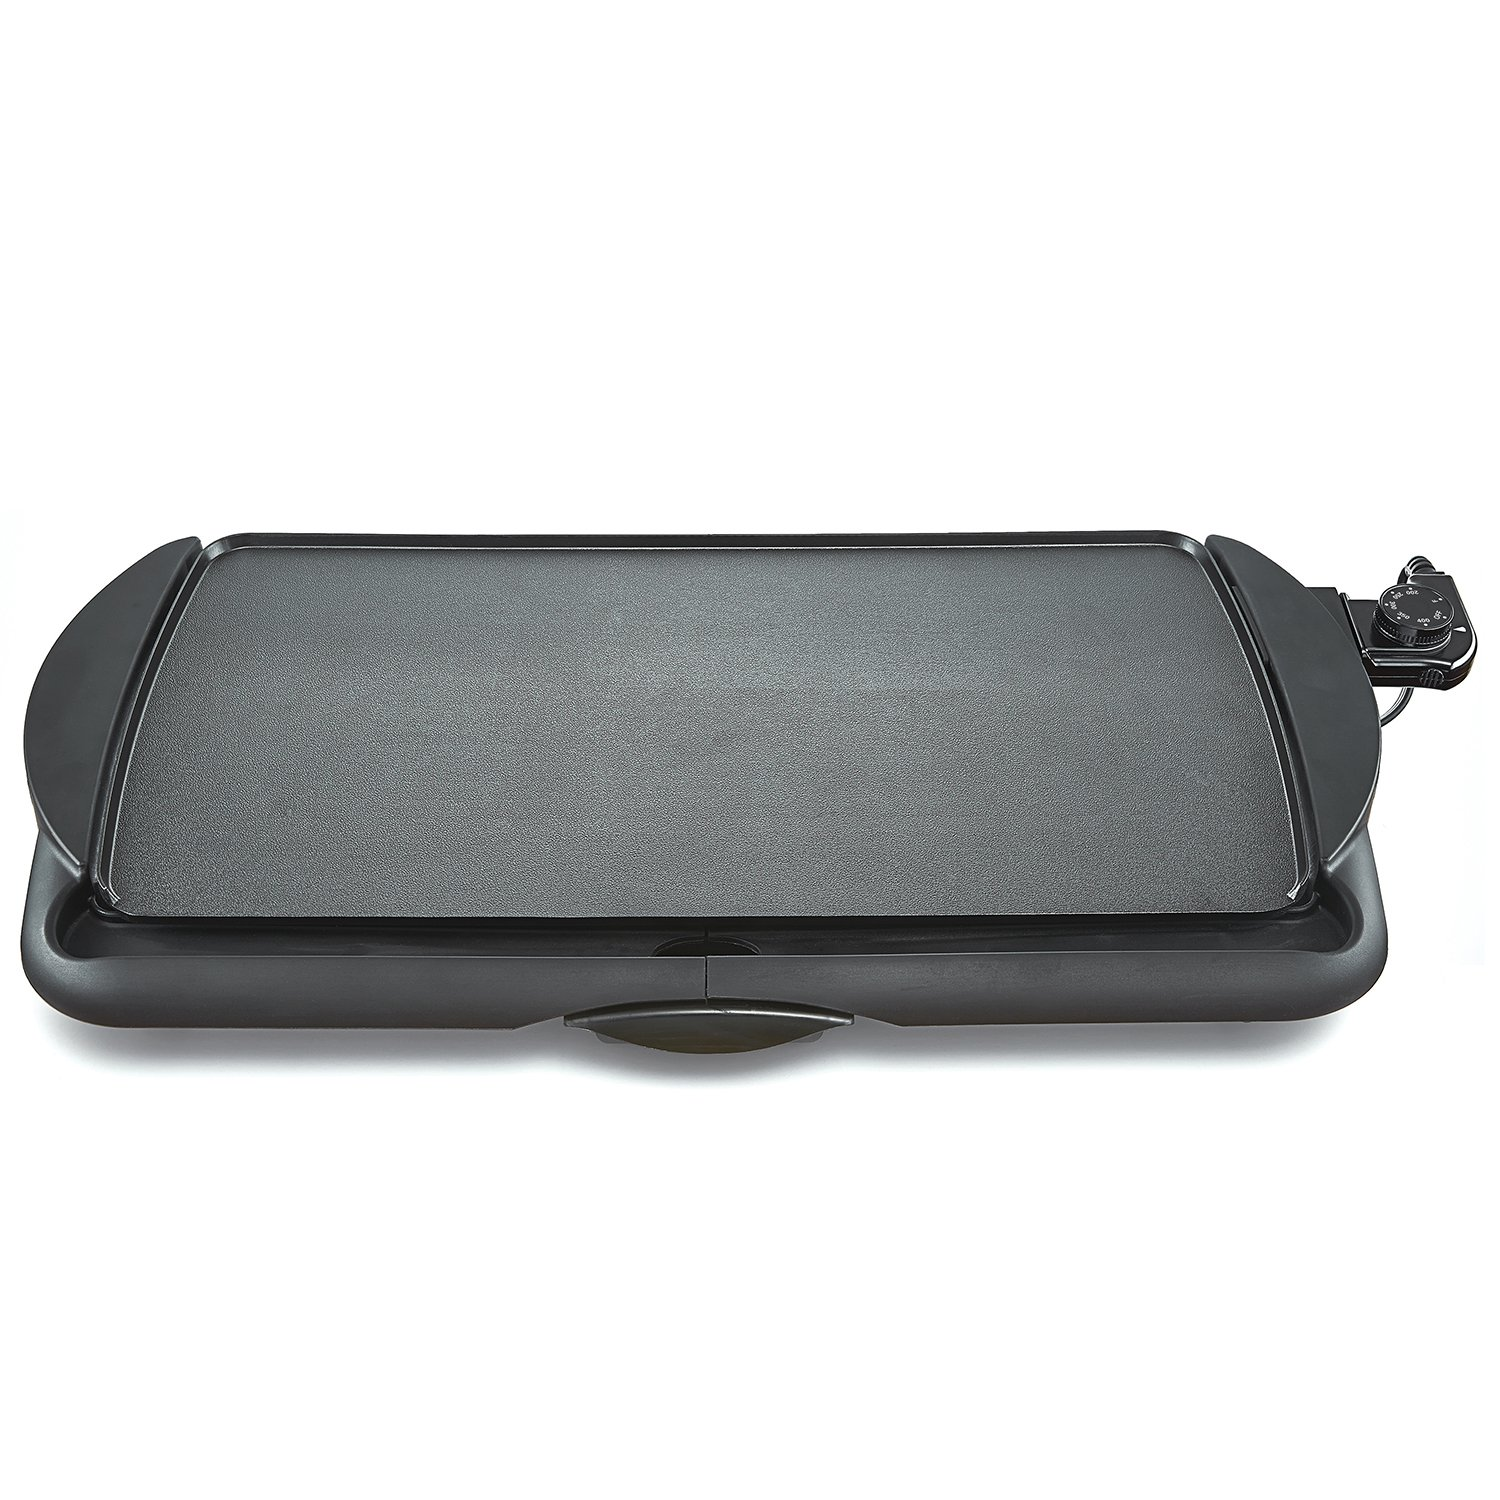 BELLA 10.5 Inch by 20 Inch Electric Non Stick Griddle, Black  BPA-FREE 13602 by BELLA